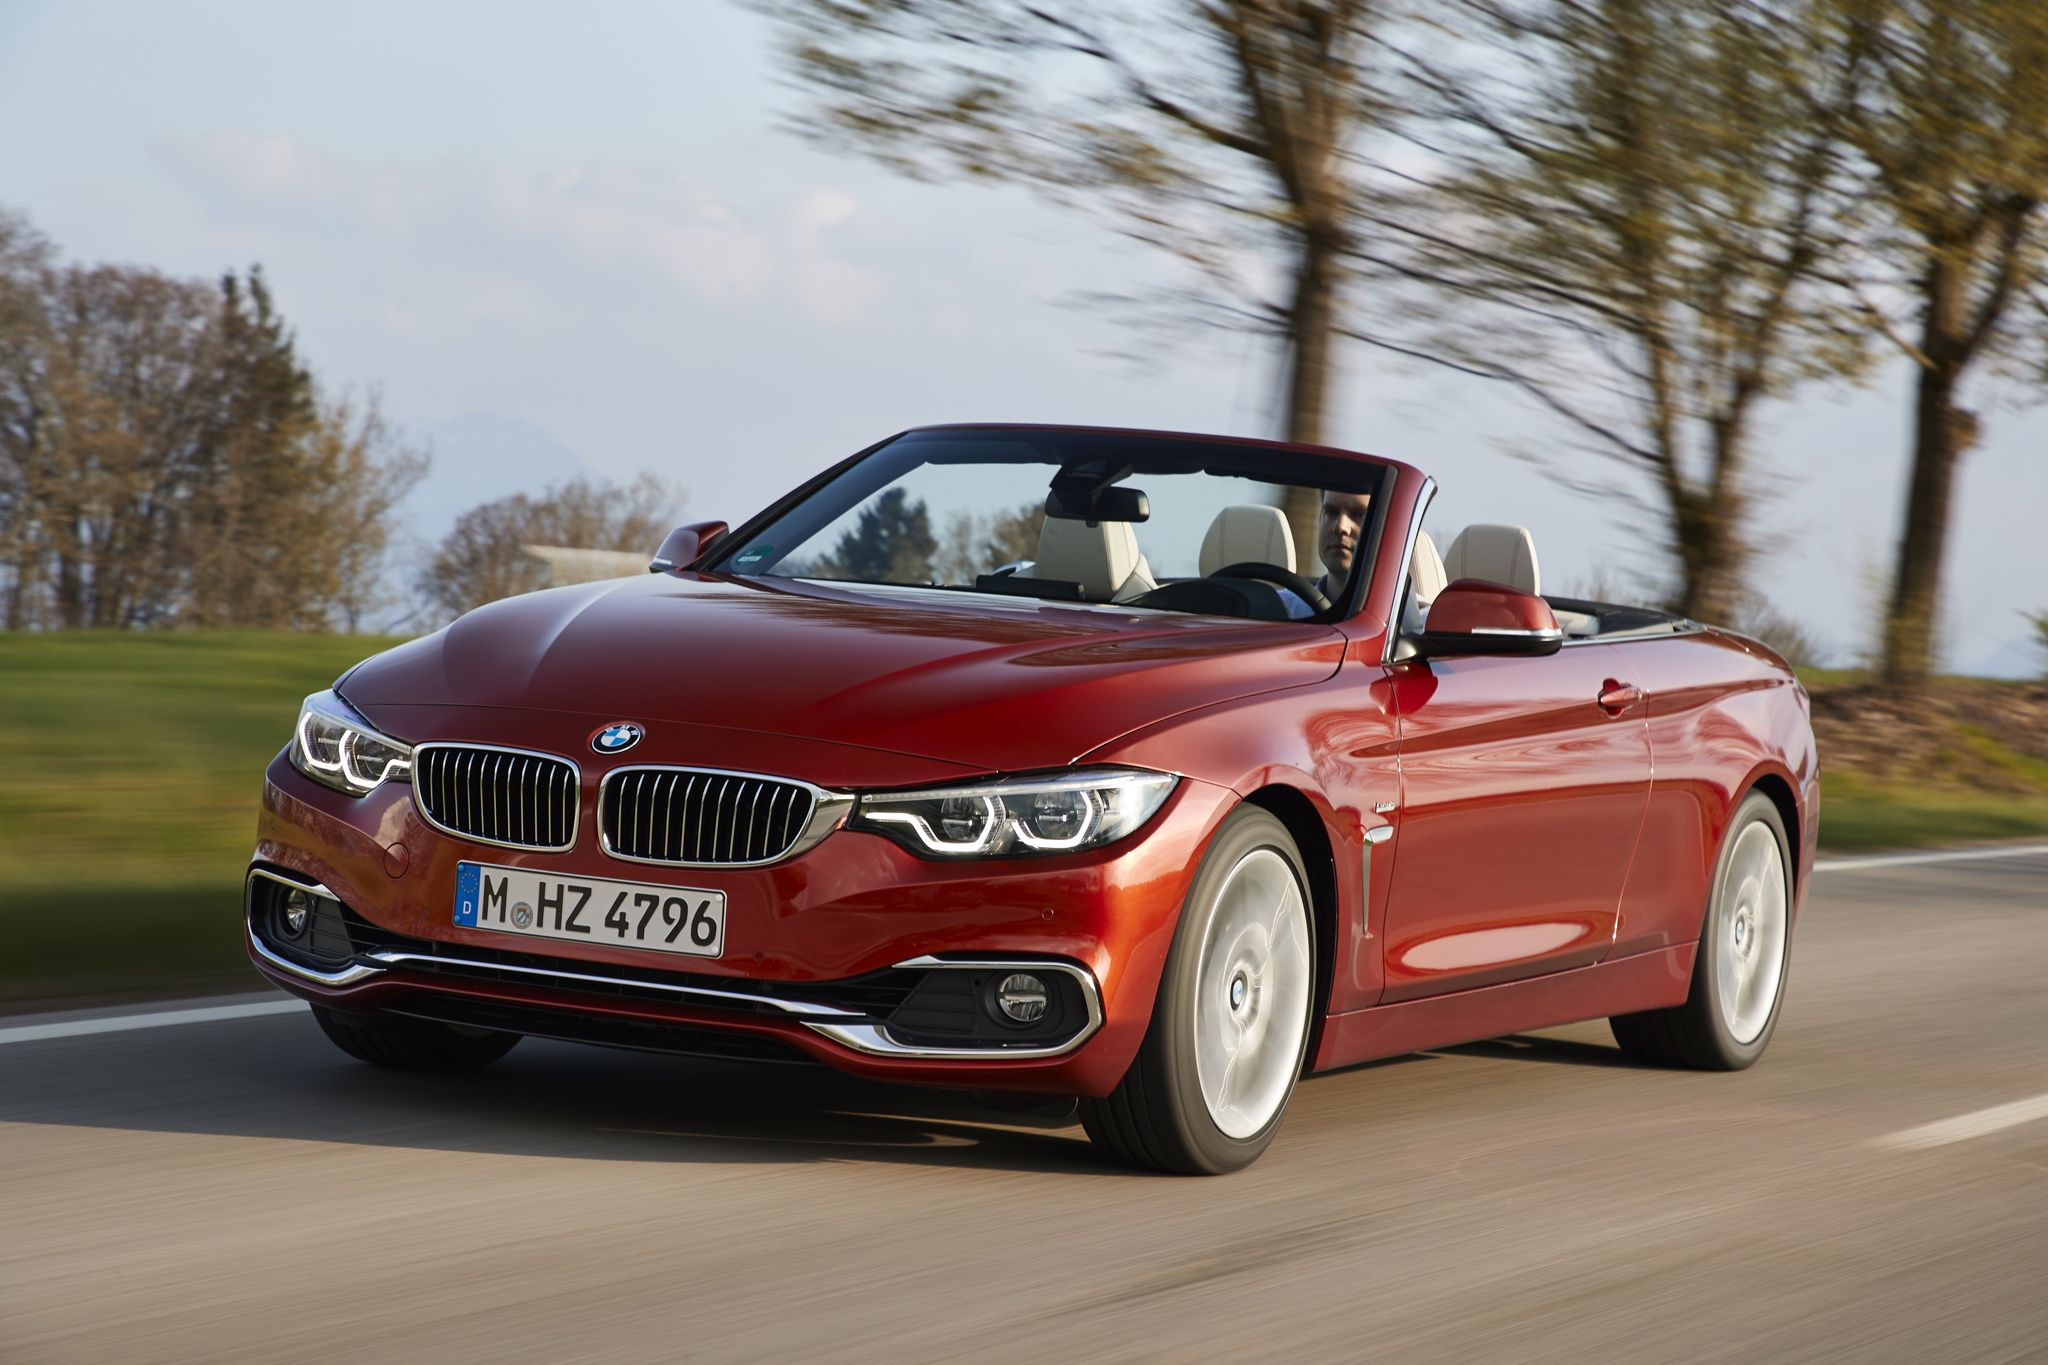 Pin By Nguyễn Yuri On Oto In 2020 Bmw Convertible Facelift